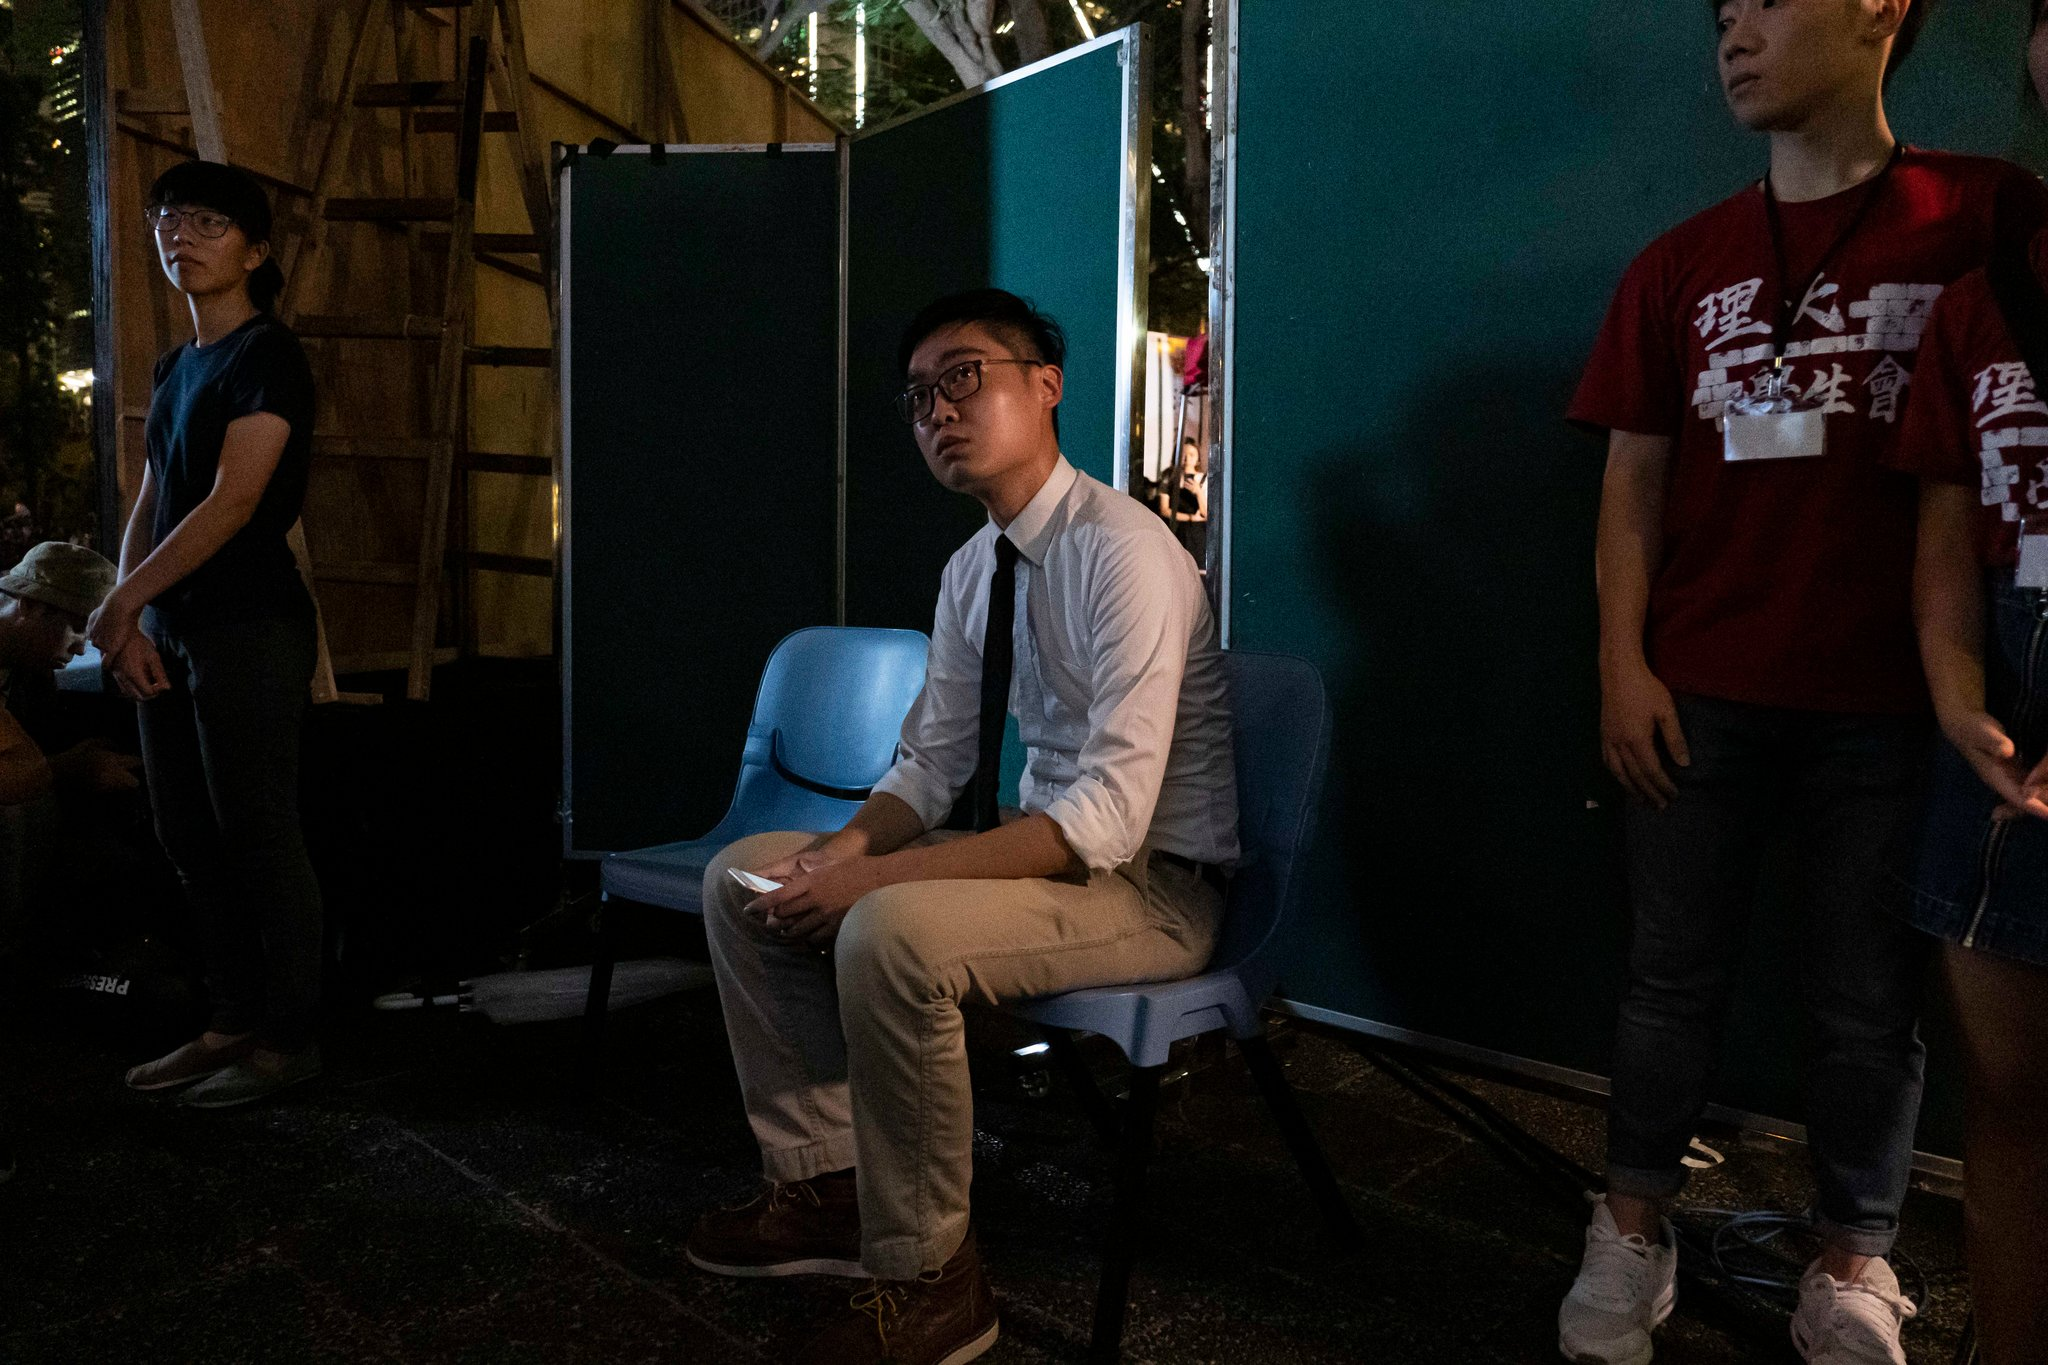 Andy Chan, who led the now-banned Hong Kong National Party, preparing to speak at a rally in Hong Kong earlier this month. Credit Lam Yik Fei for The New York Times